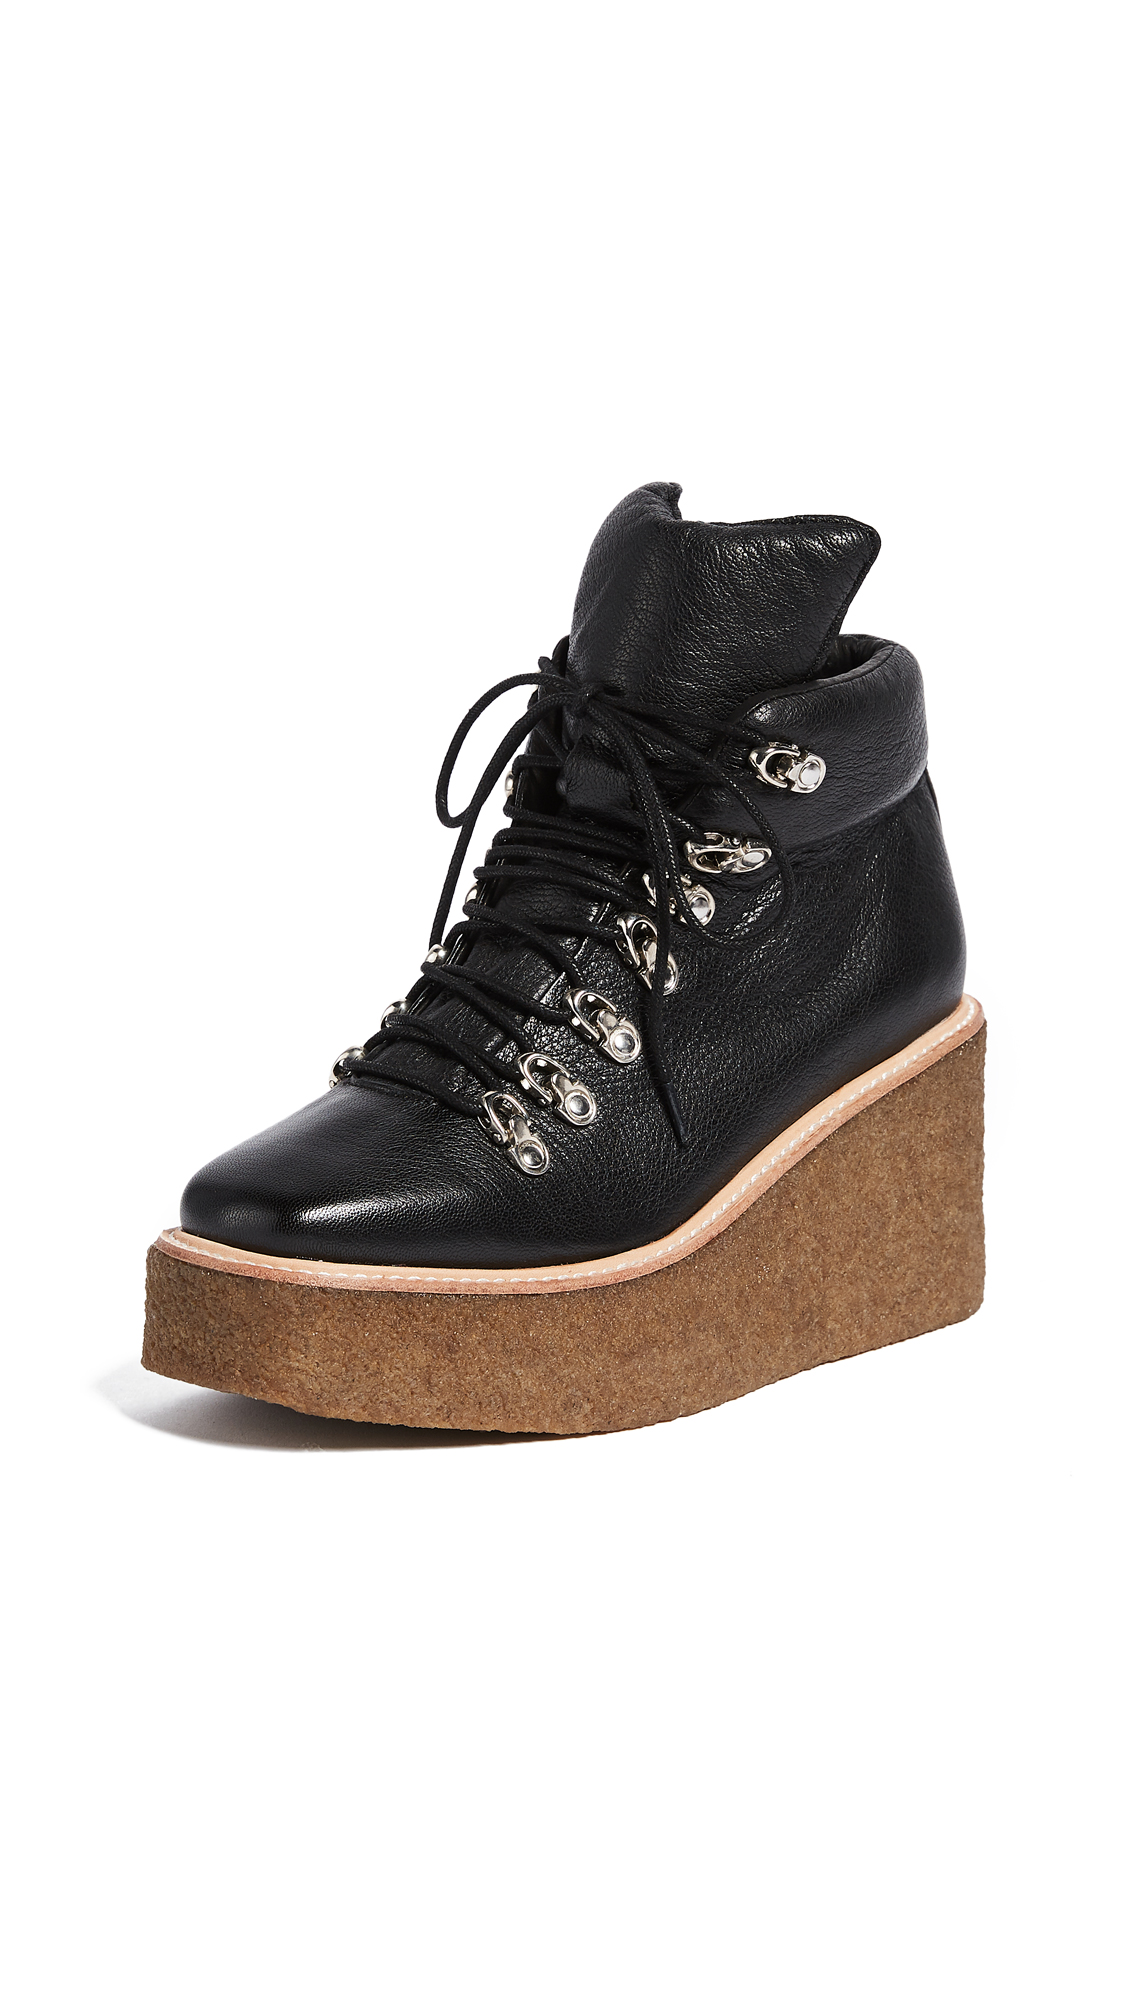 Jeffrey Campbell Viajar Wedge Hiker Booties - Black